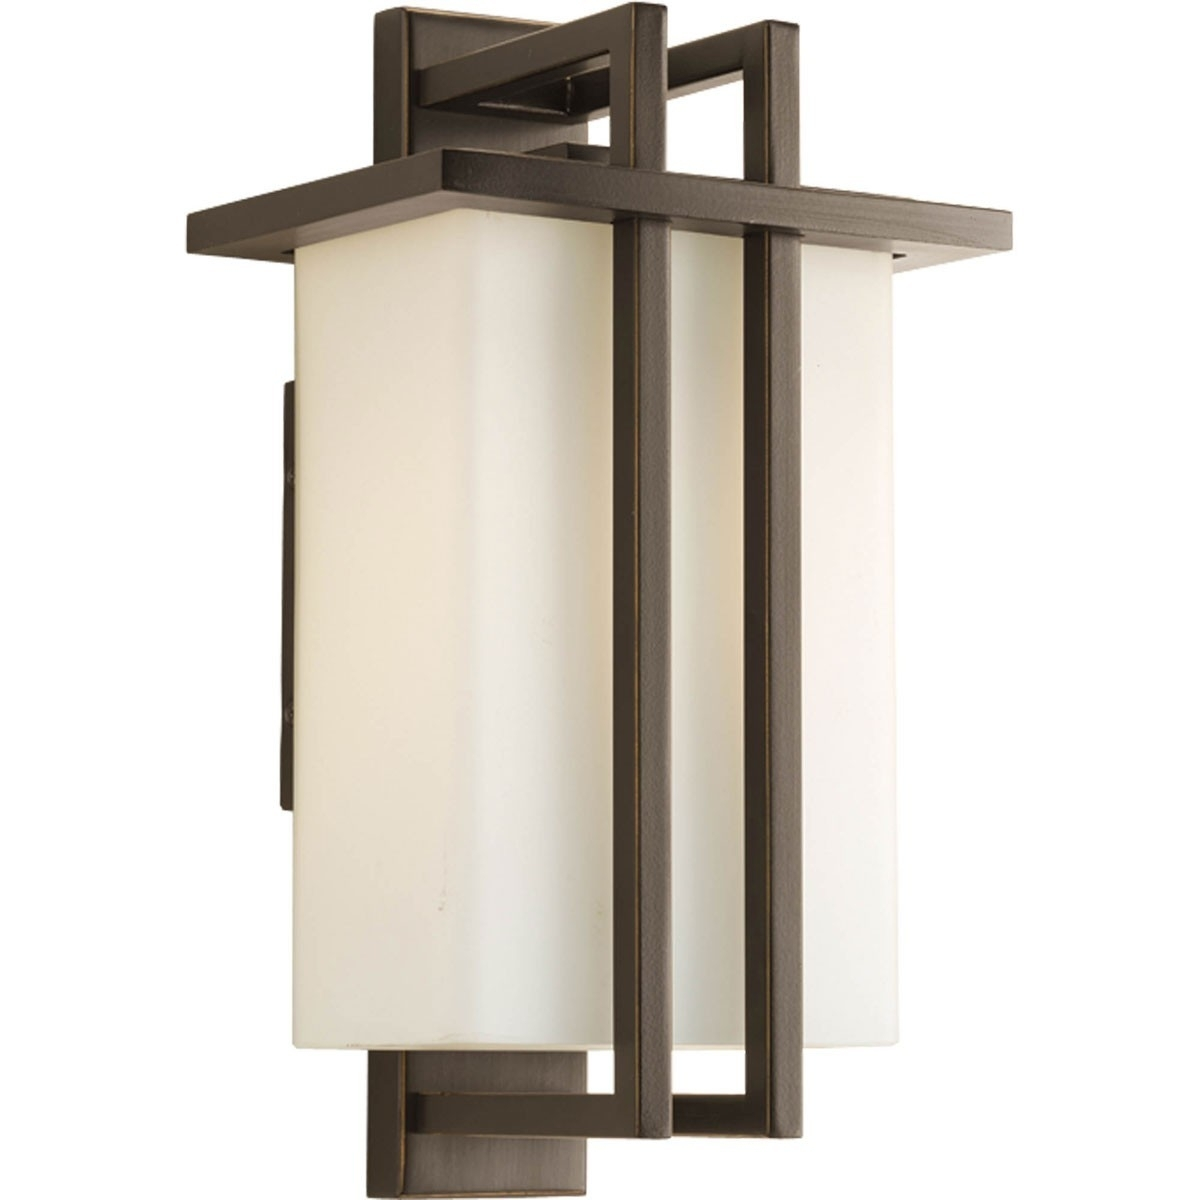 Outdoor Small Hanging Lantern Light Fixture – Progress Lighting With Regard To Outdoor Hanging Wall Lanterns (#7 of 15)